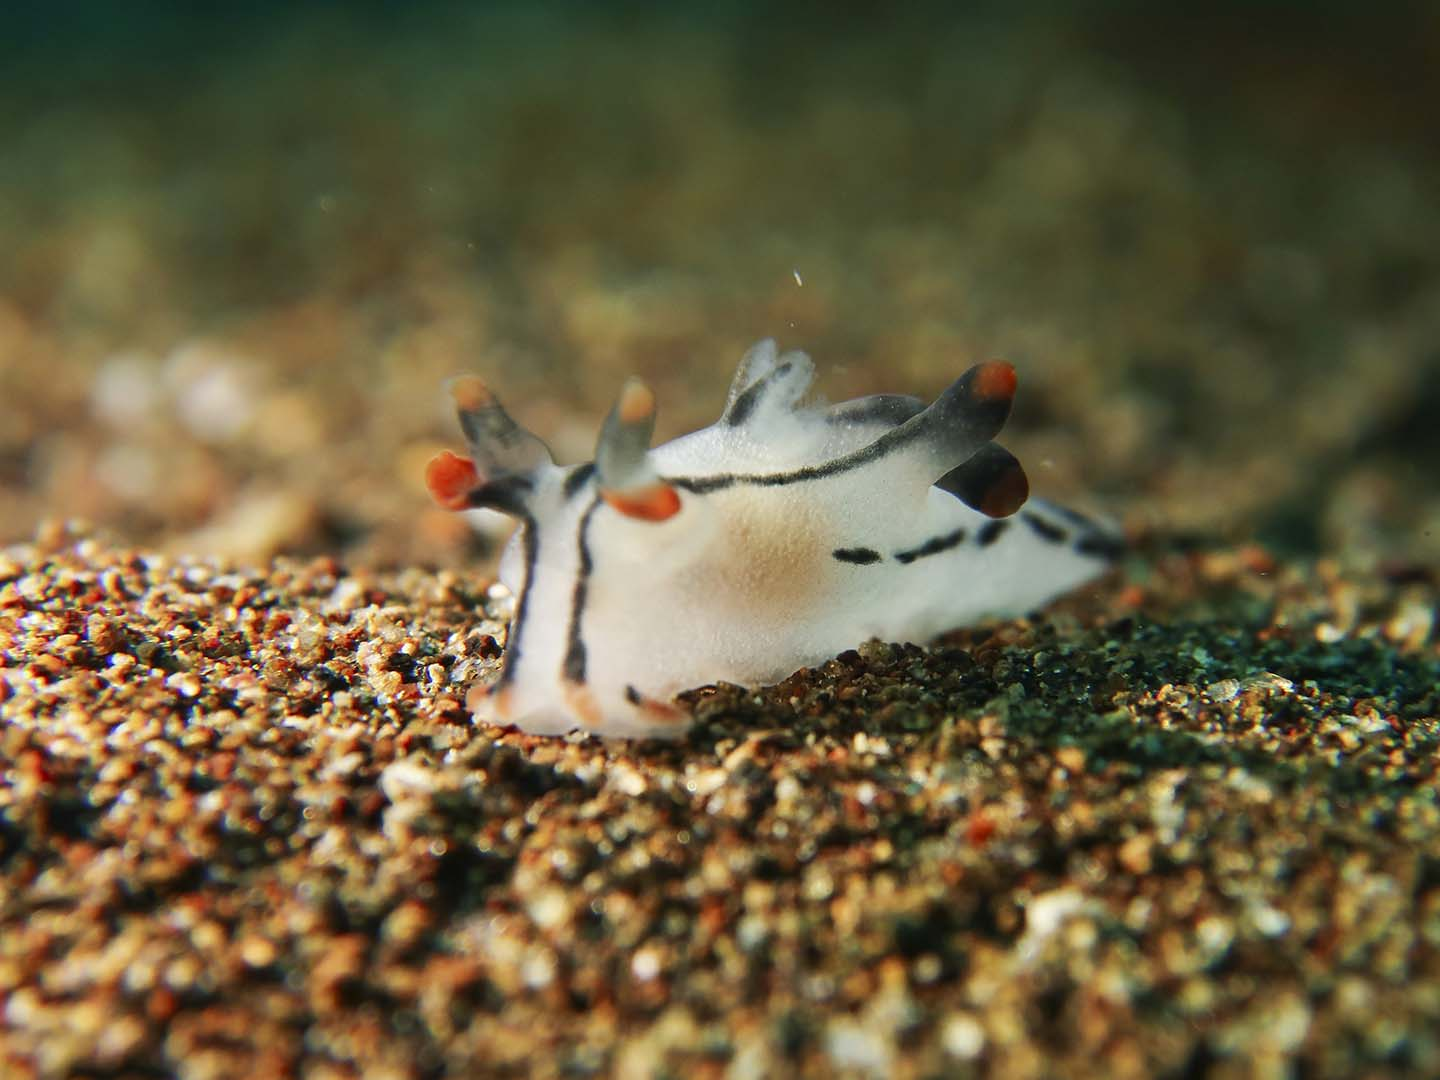 A Thecacera picta nudibranch- known to be closely related to Picachu spotted while scuba diving in Dauin